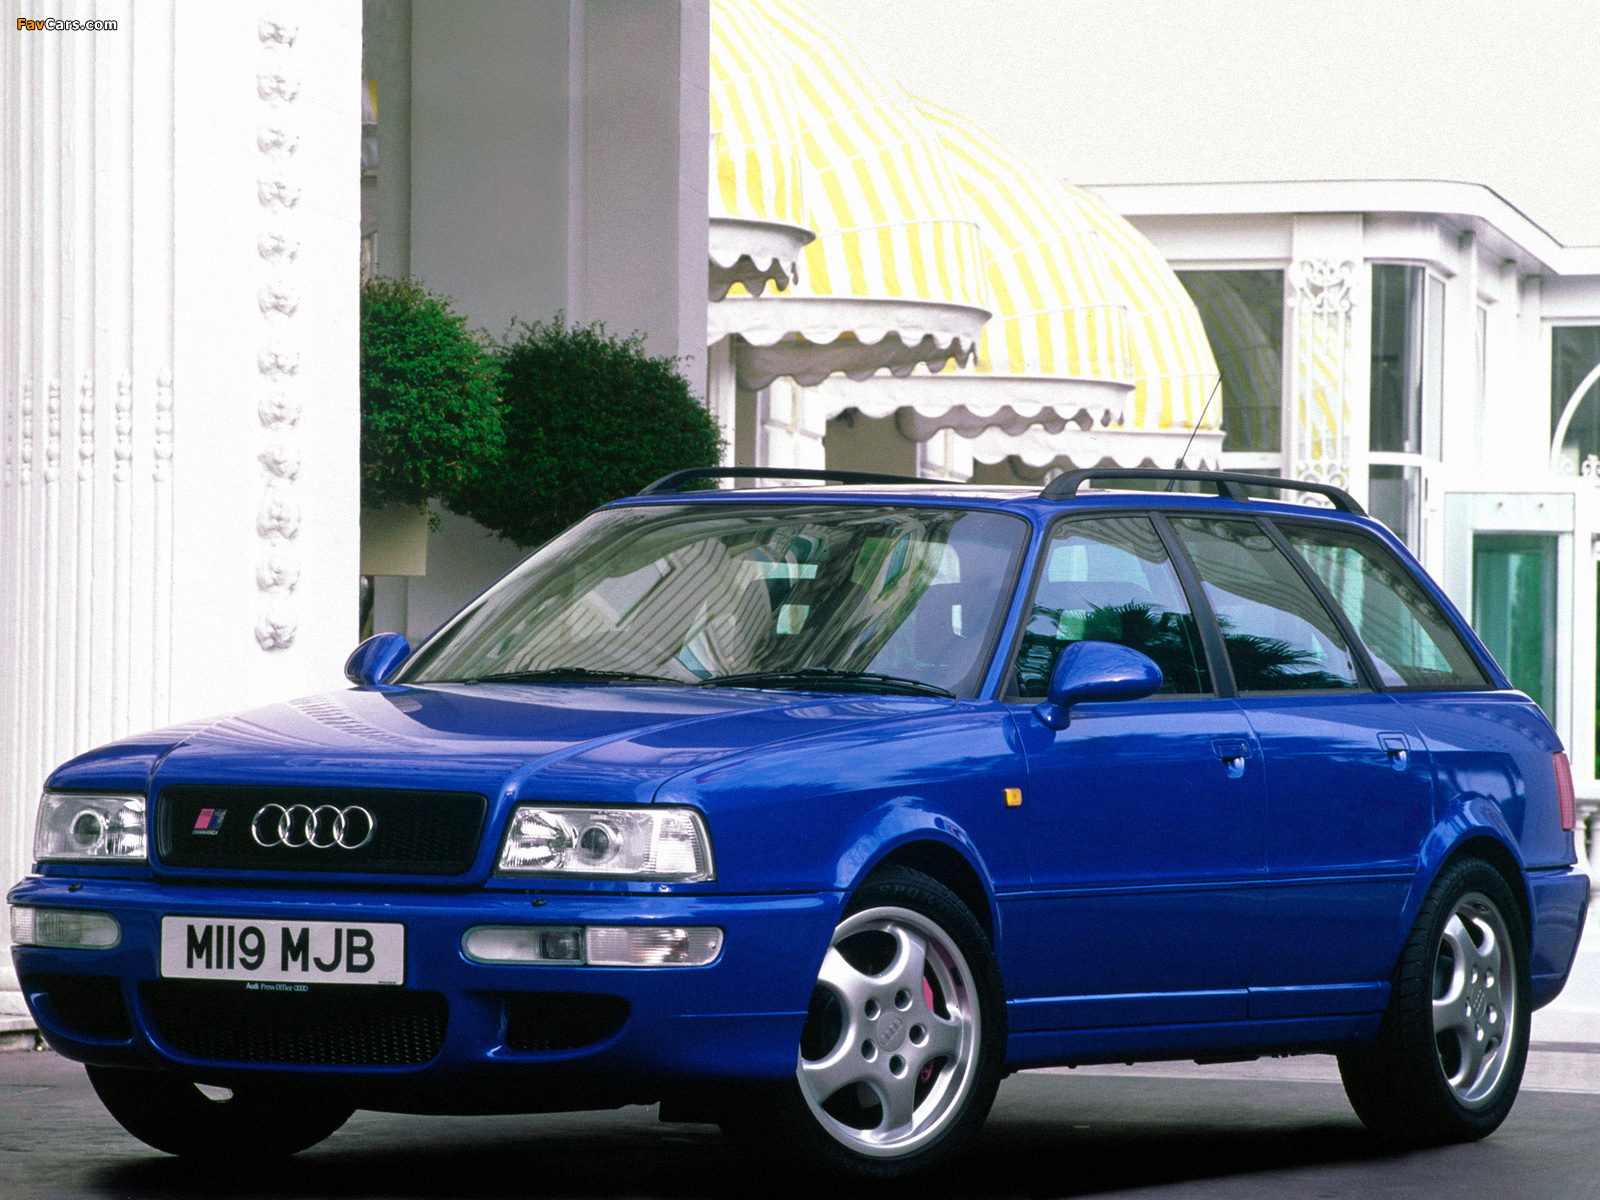 Why The Audi Rs2 Is A Proper 90s Hero Car on used chevrolet